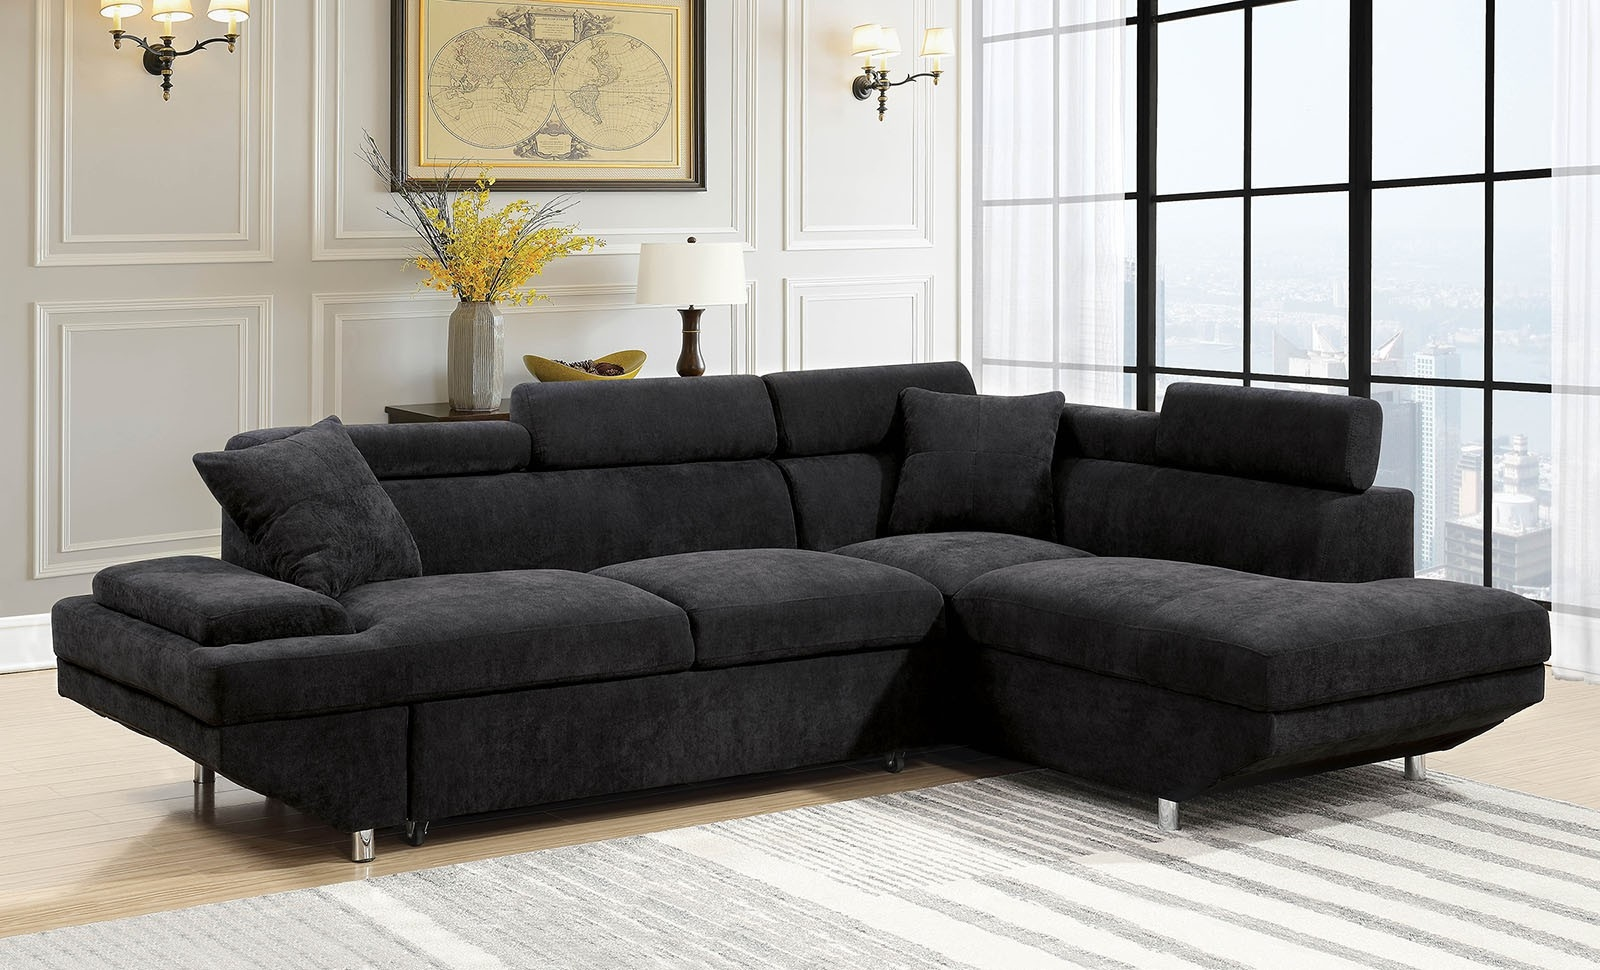 Modern Style Flannelette Upholstered Sectional